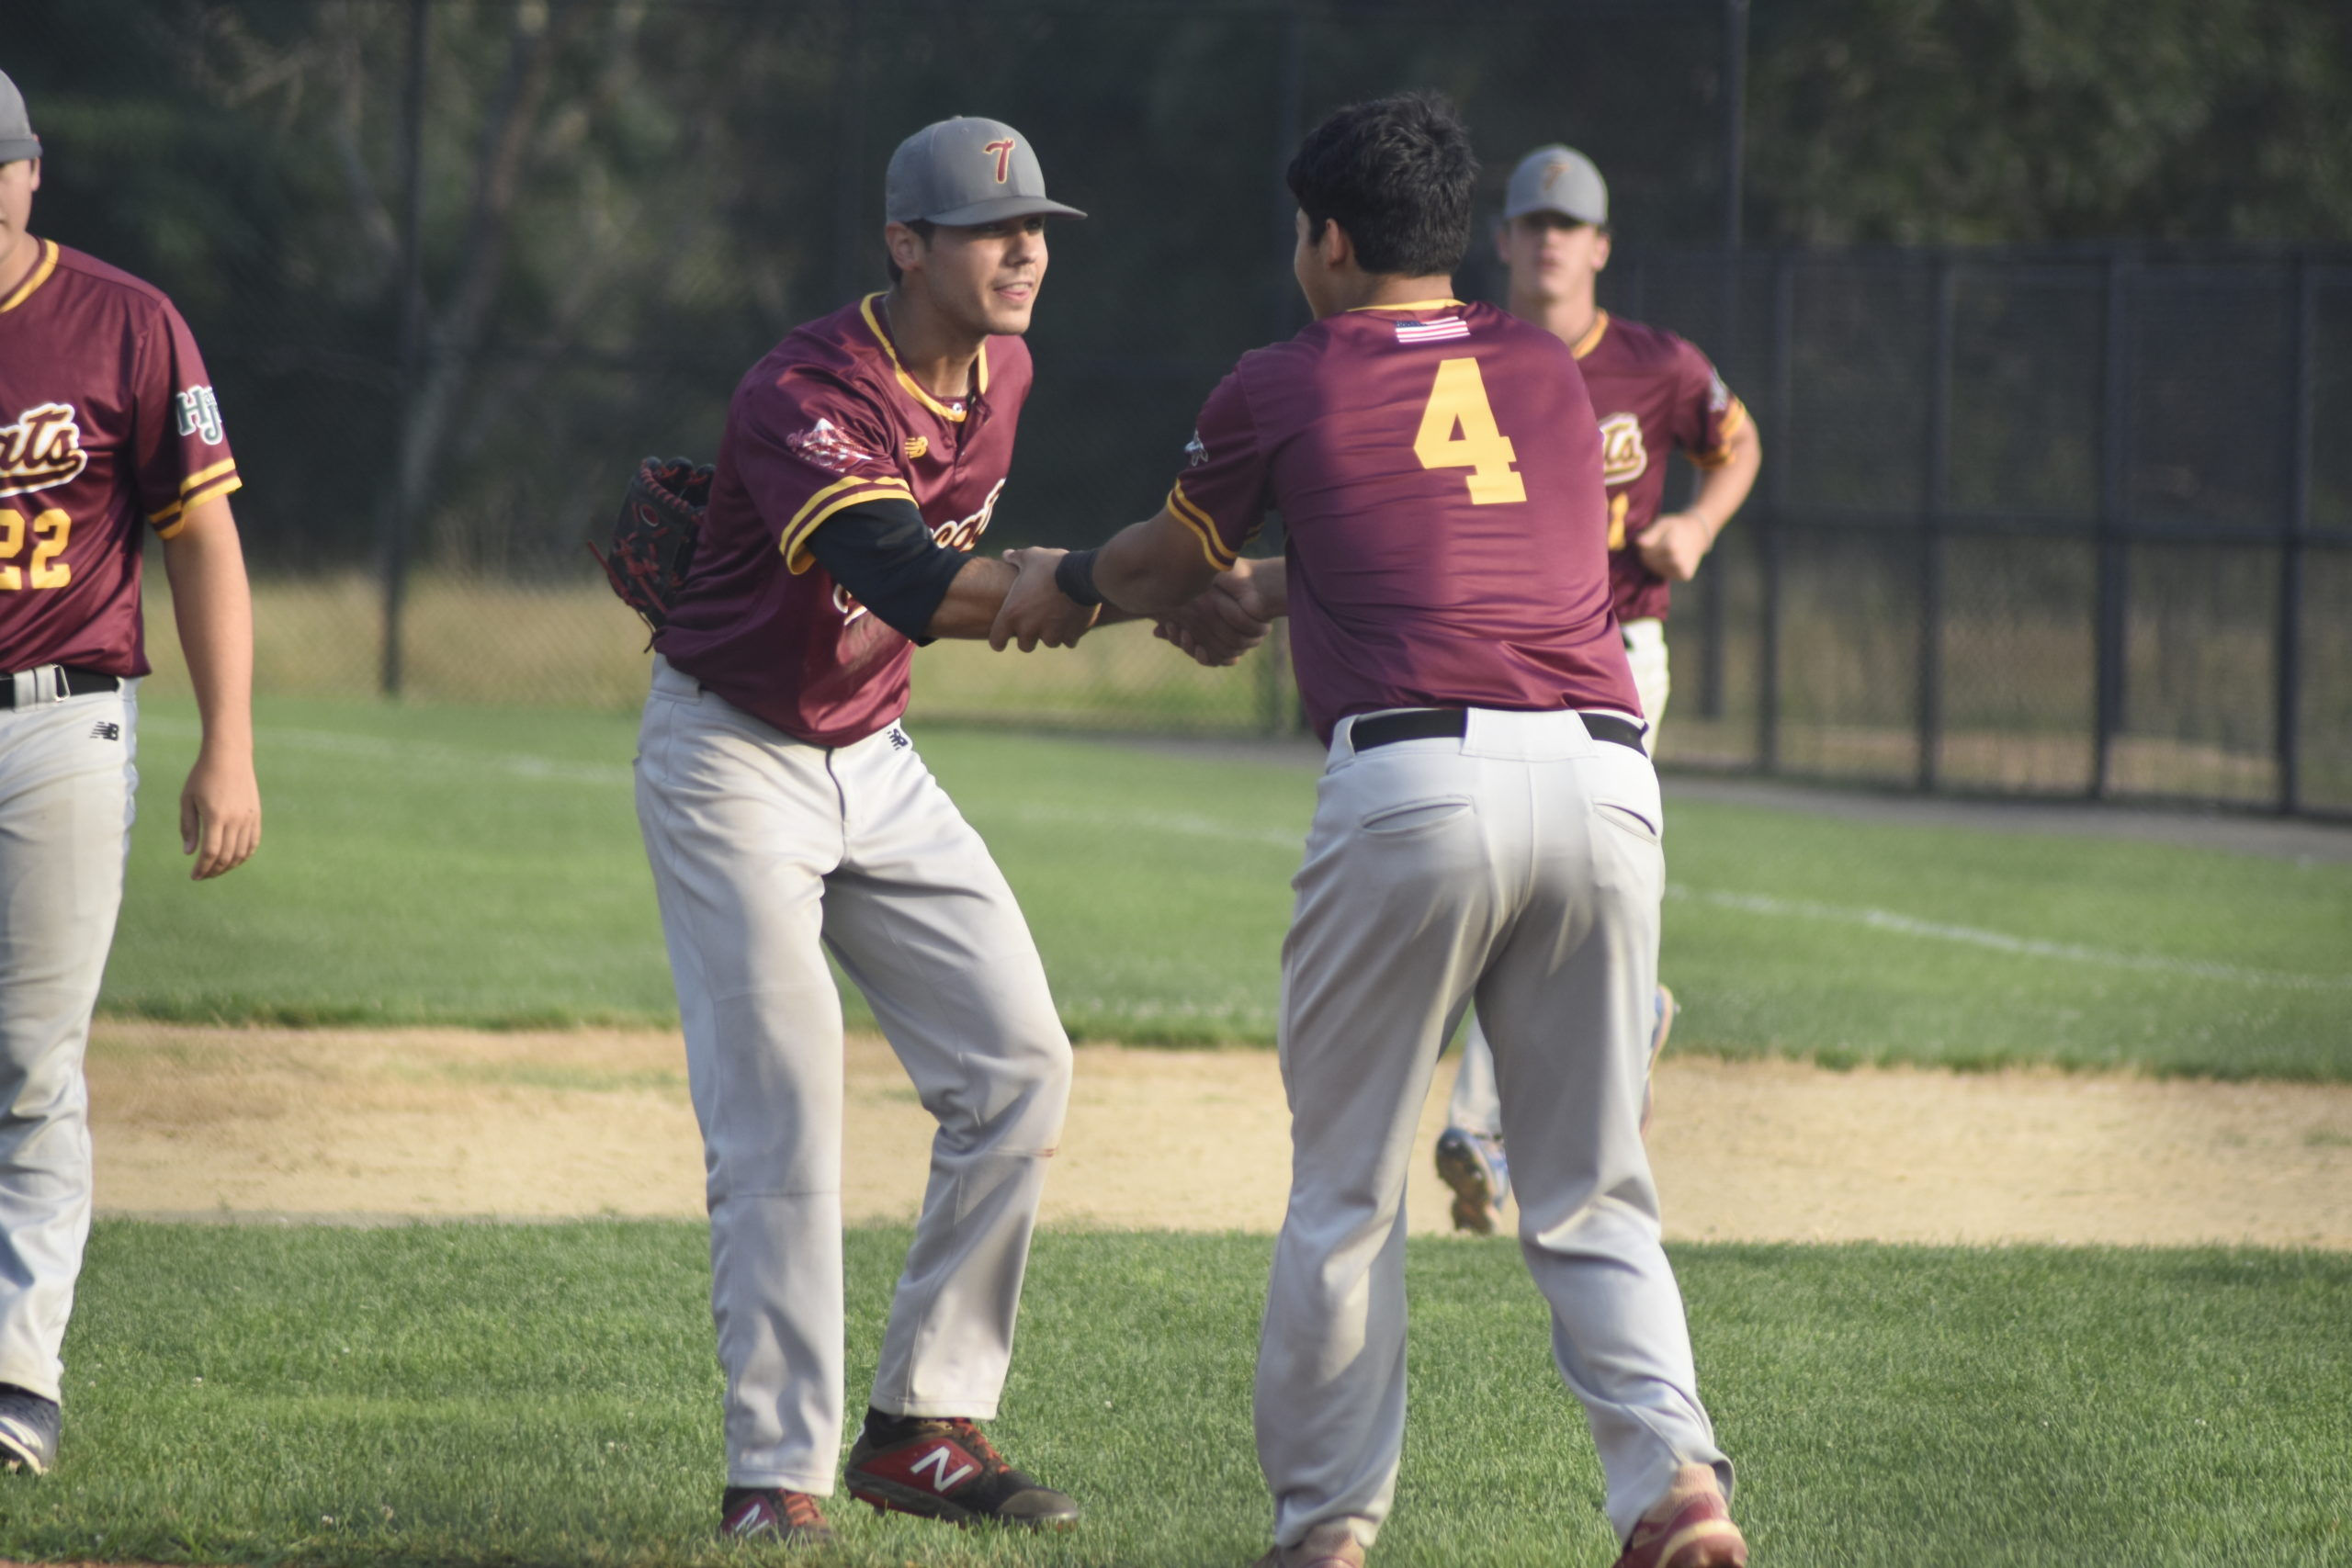 Pitcher Coleton Reitan (Wesleyan) is congratulated by teammate Tyler Galletti (Sacred Heart) after helping the Tomcats defeat the Westhampton Aviators, 1-0, on Sunday to reach the HCBL Championship.